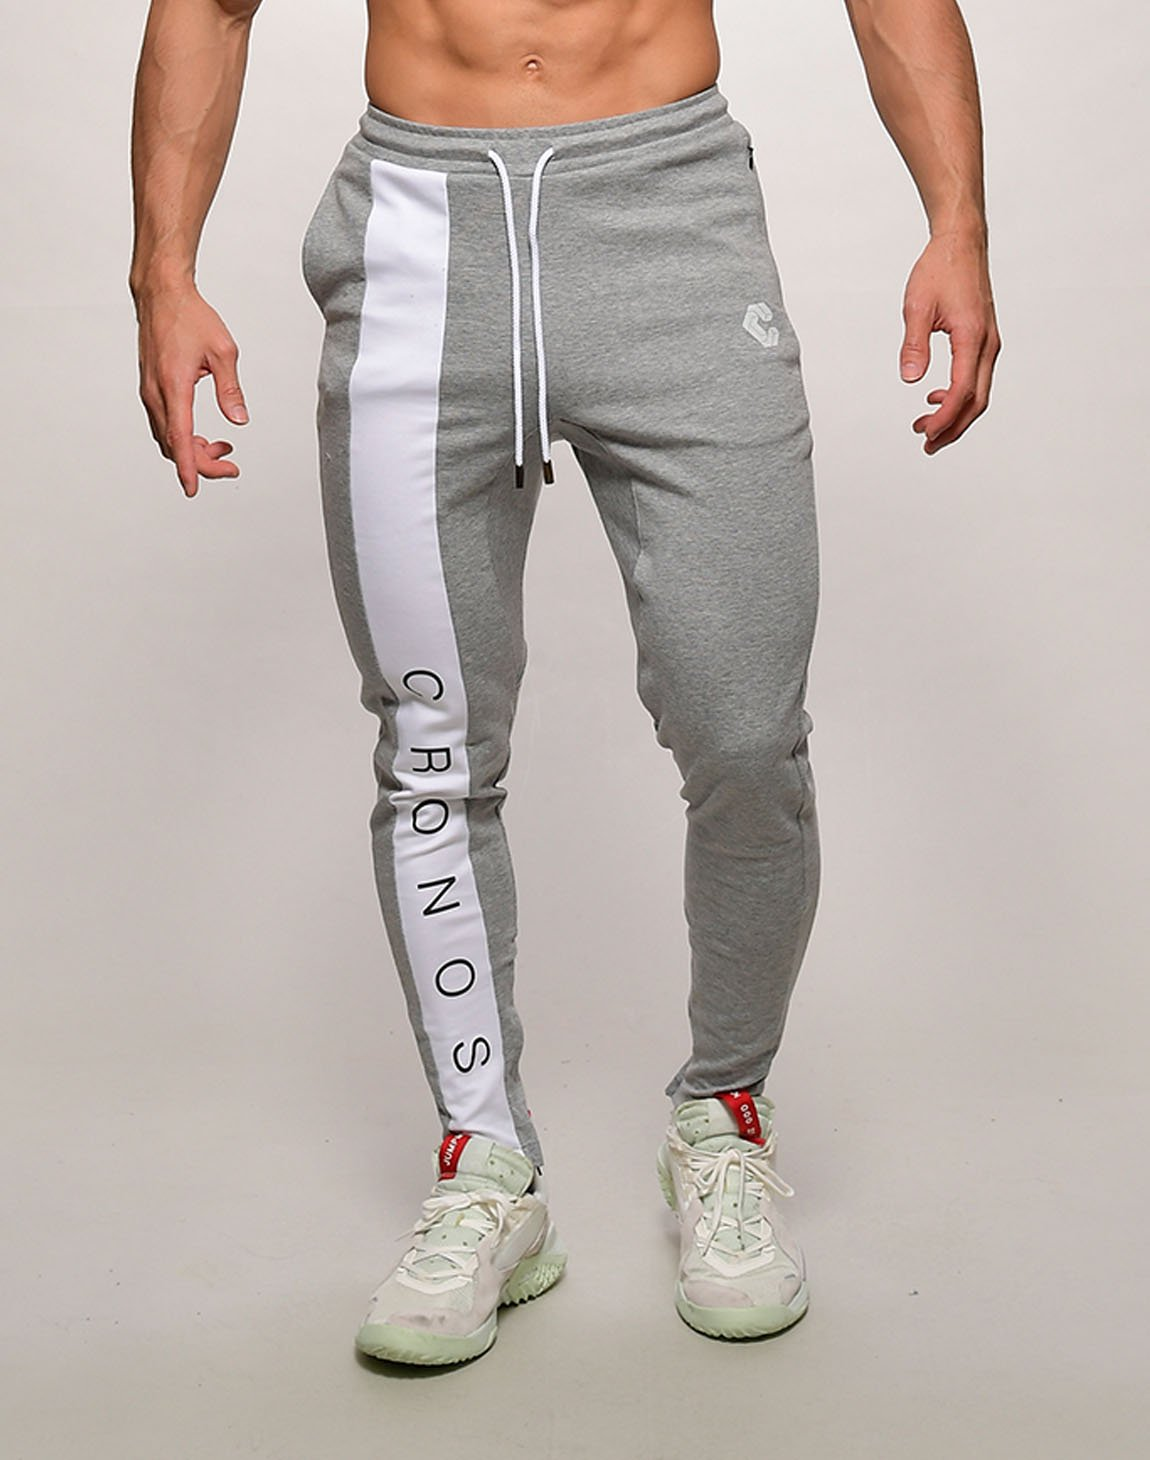 <img class='new_mark_img1' src='https://img.shop-pro.jp/img/new/icons1.gif' style='border:none;display:inline;margin:0px;padding:0px;width:auto;' />CRONOS FRONT LETTER LOGO  SWEET PANTS【GRAYxWHITE】